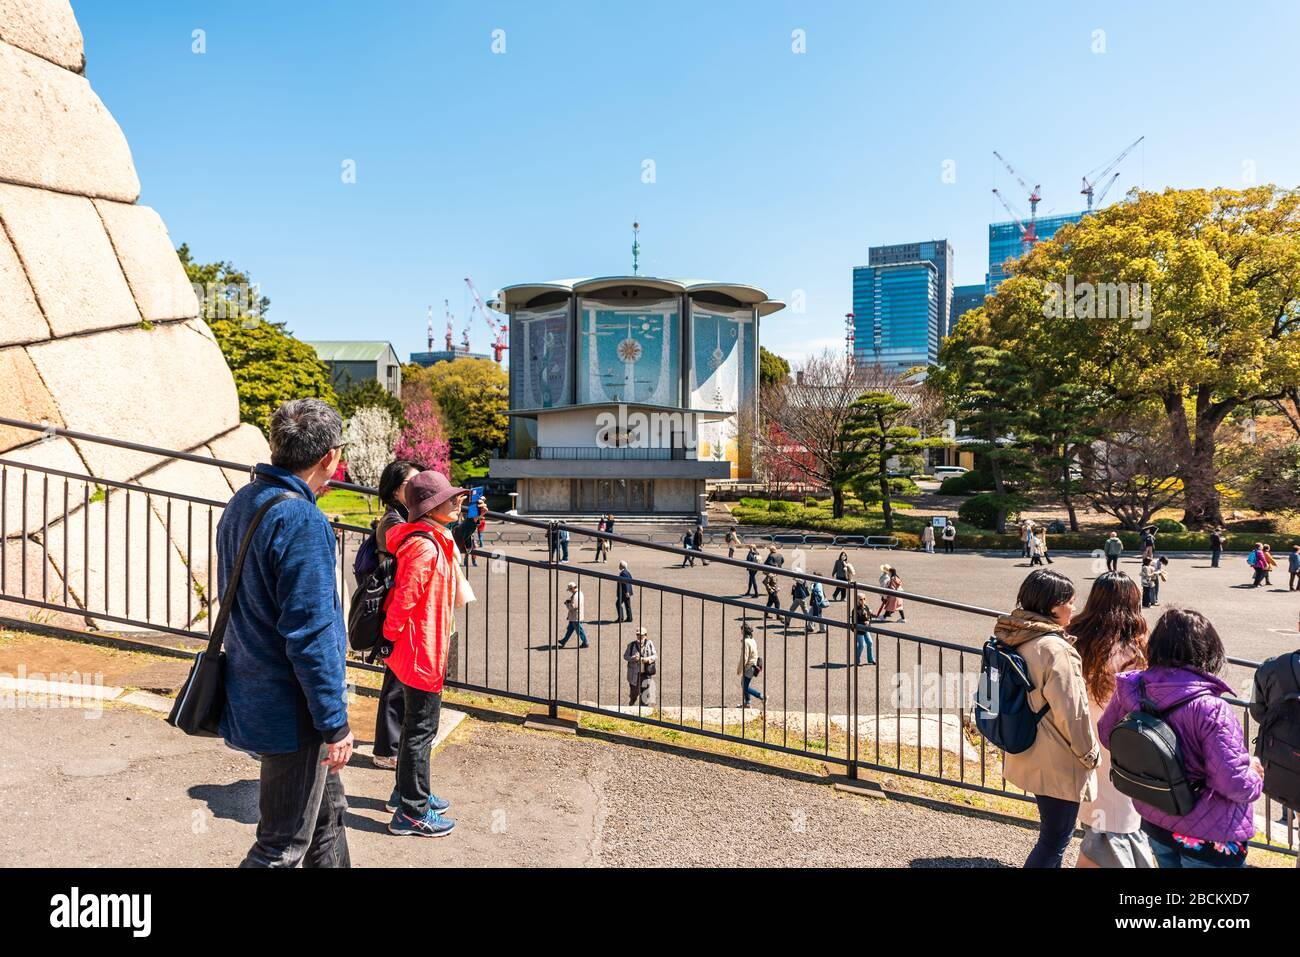 Tokyo, Japan - April 1, 2019: Imperial palace national gardens park with people at Edo period castle keep and Tokagakudo Imperial household agency dep Stock Photo